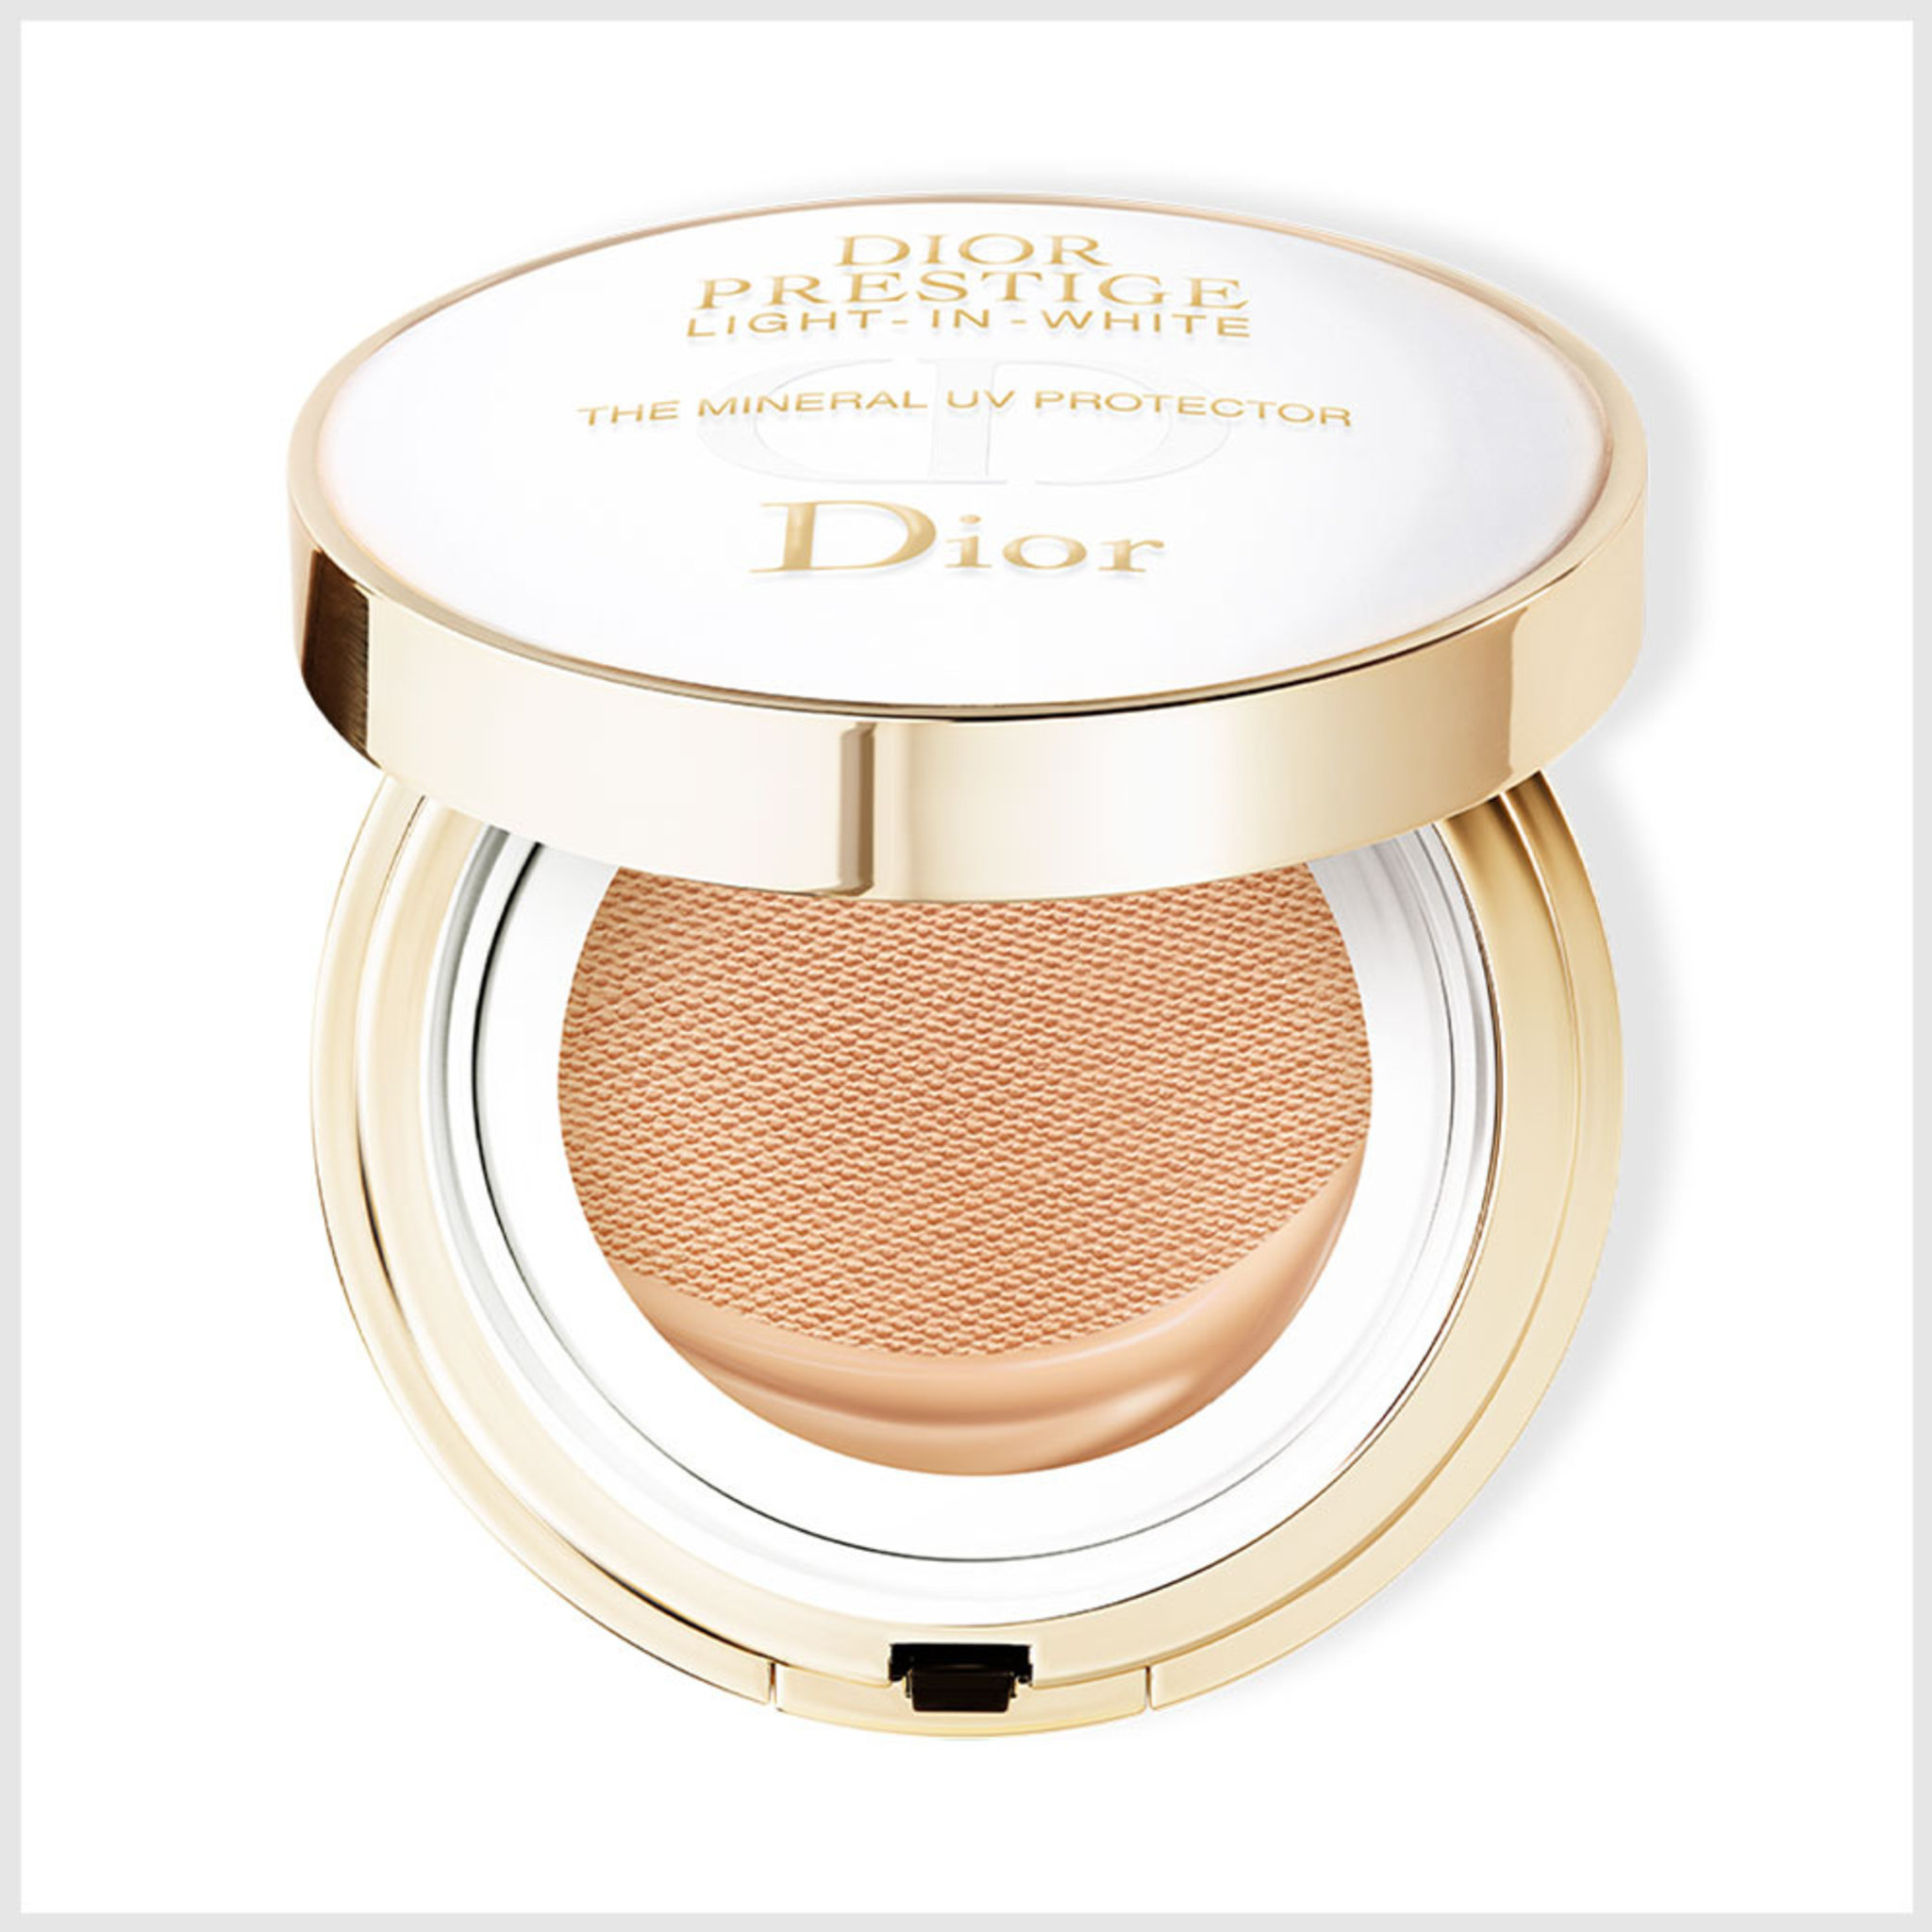 Dior Prestige Light-In-WhiteThe Mineral UV ProtectorBlemish Balm Compact SPF 50+ PA+++, 12 G